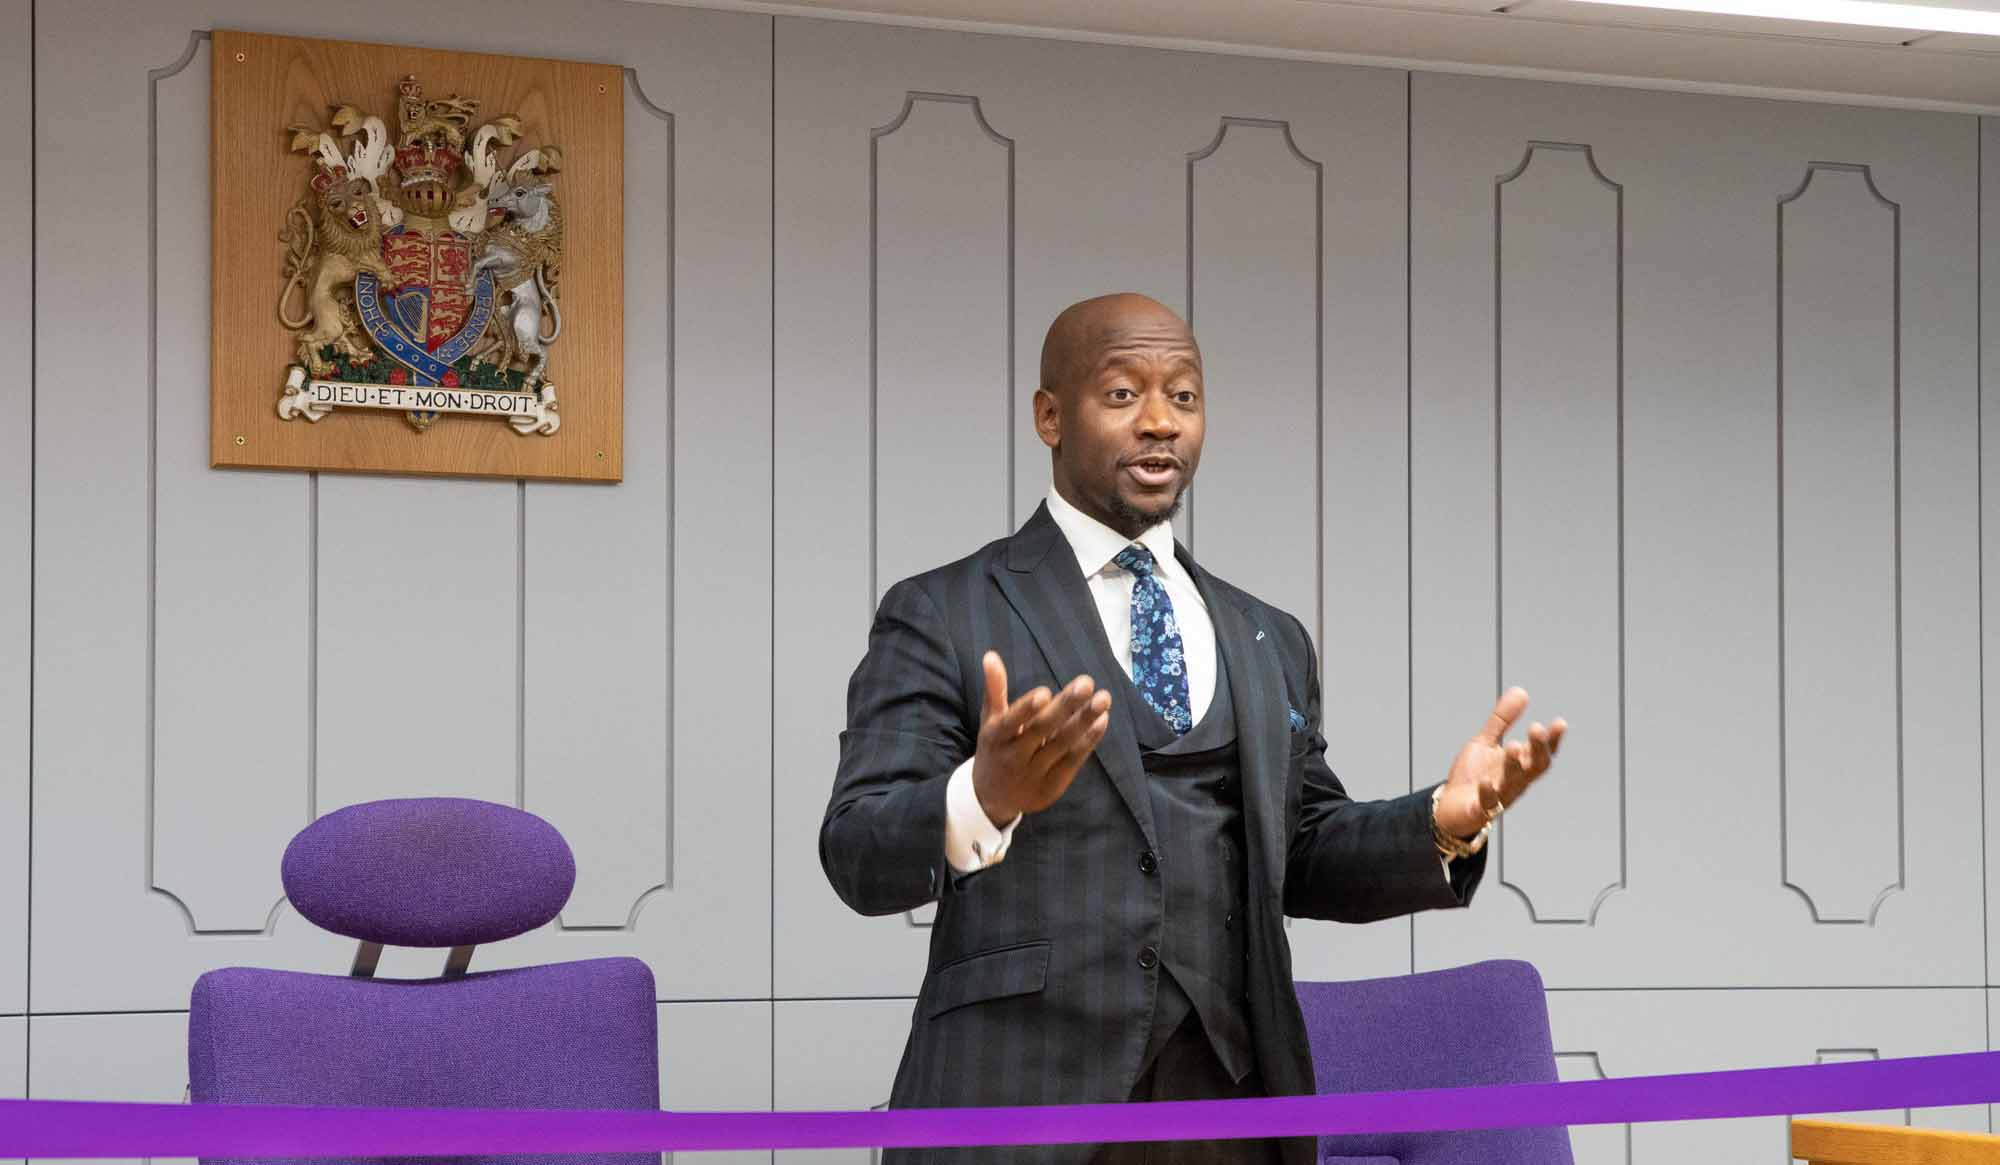 Dr Tunde Okewale opening the Mock Courtroom at London Met